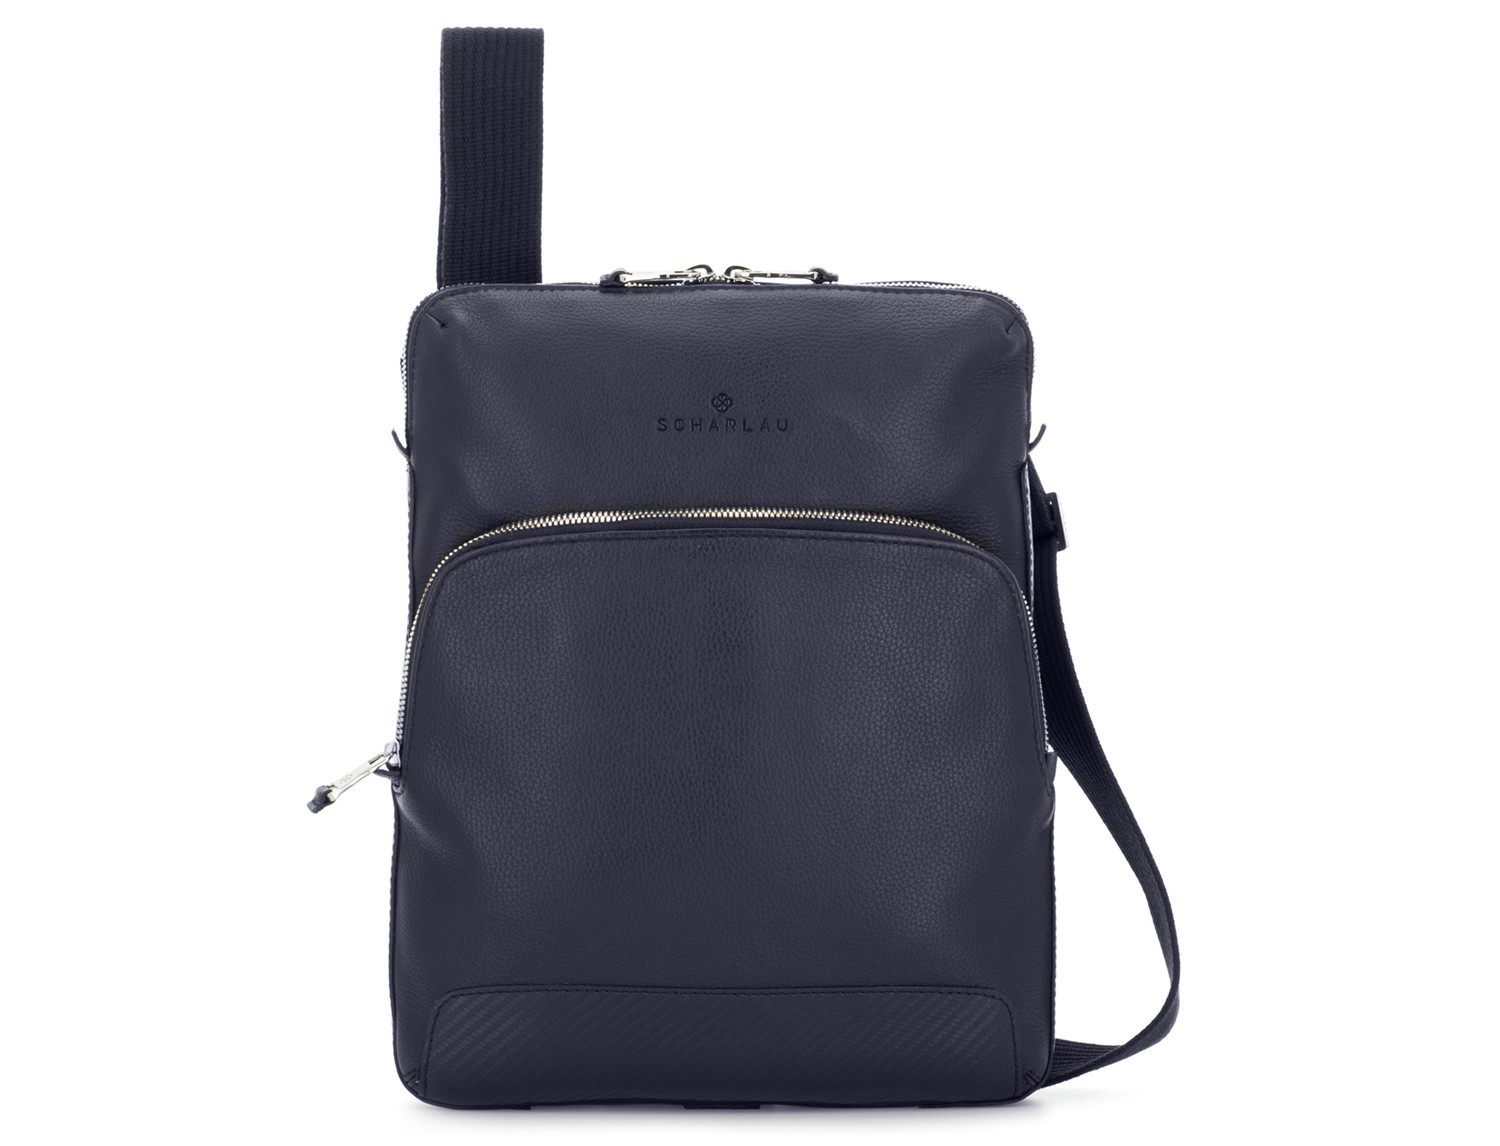 Leather cross body bag blue front